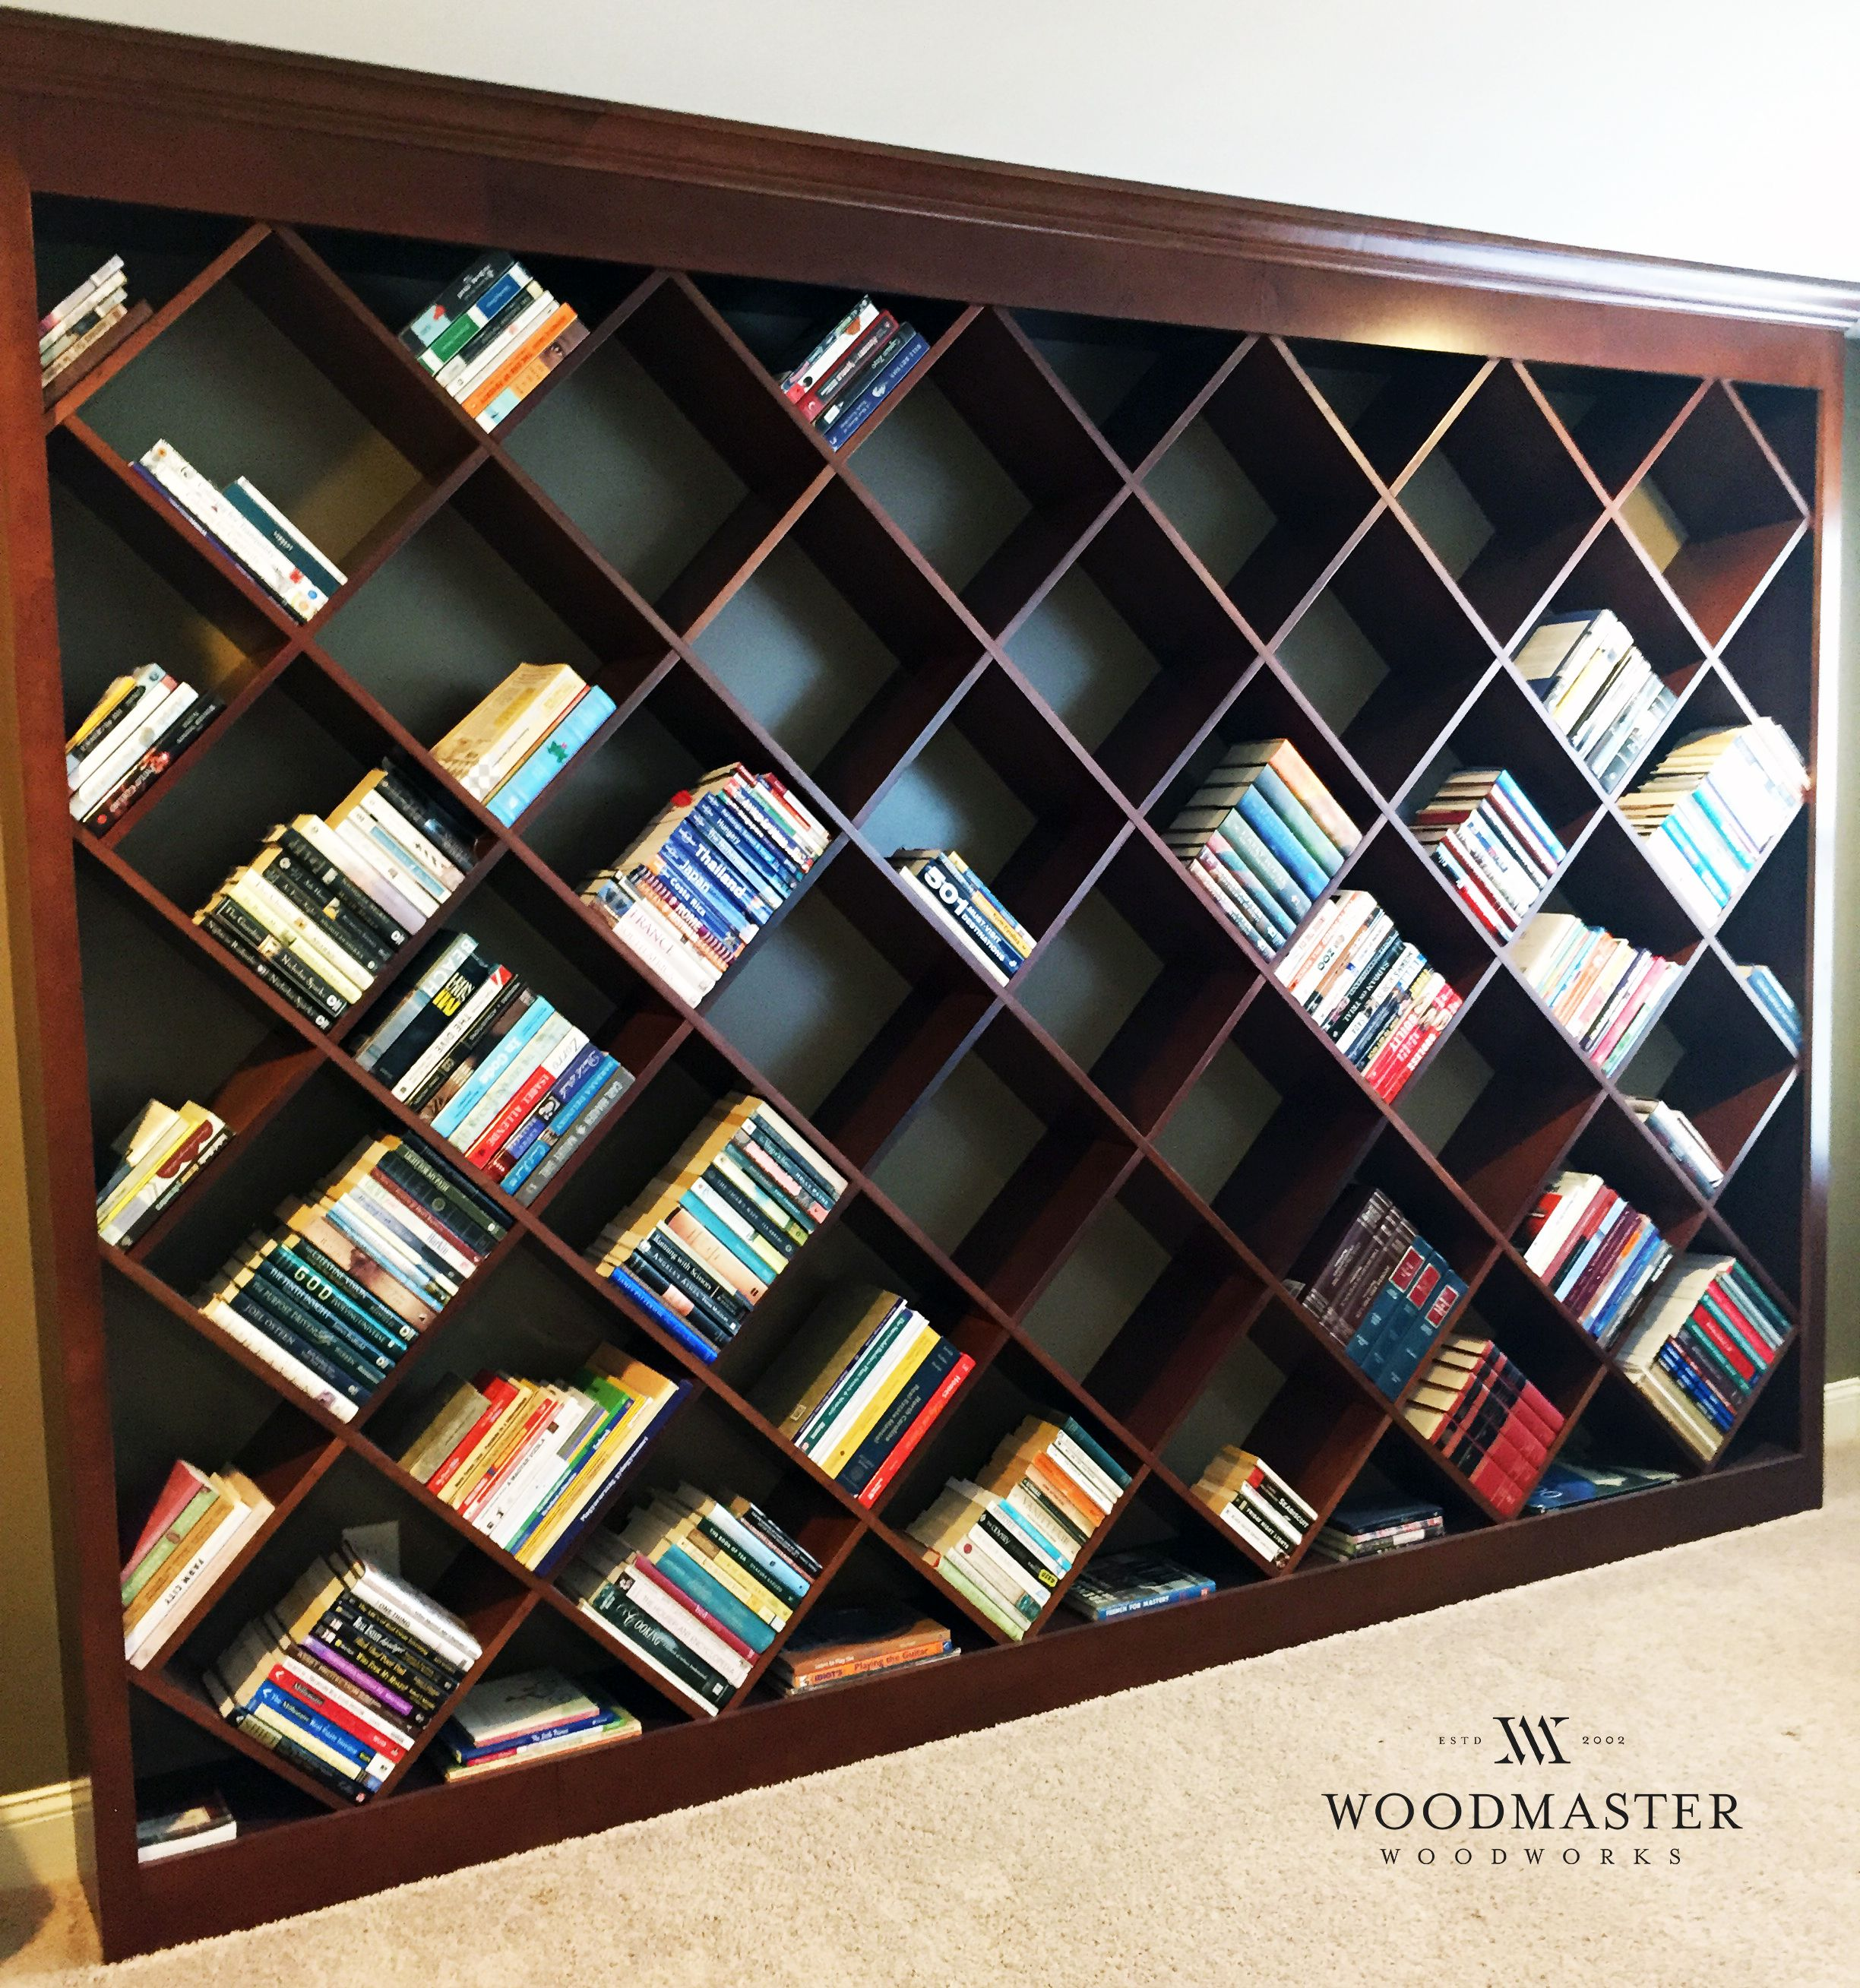 Diagonal Bookcase Not Your Average Home Office Bookcase - Estante Triangular